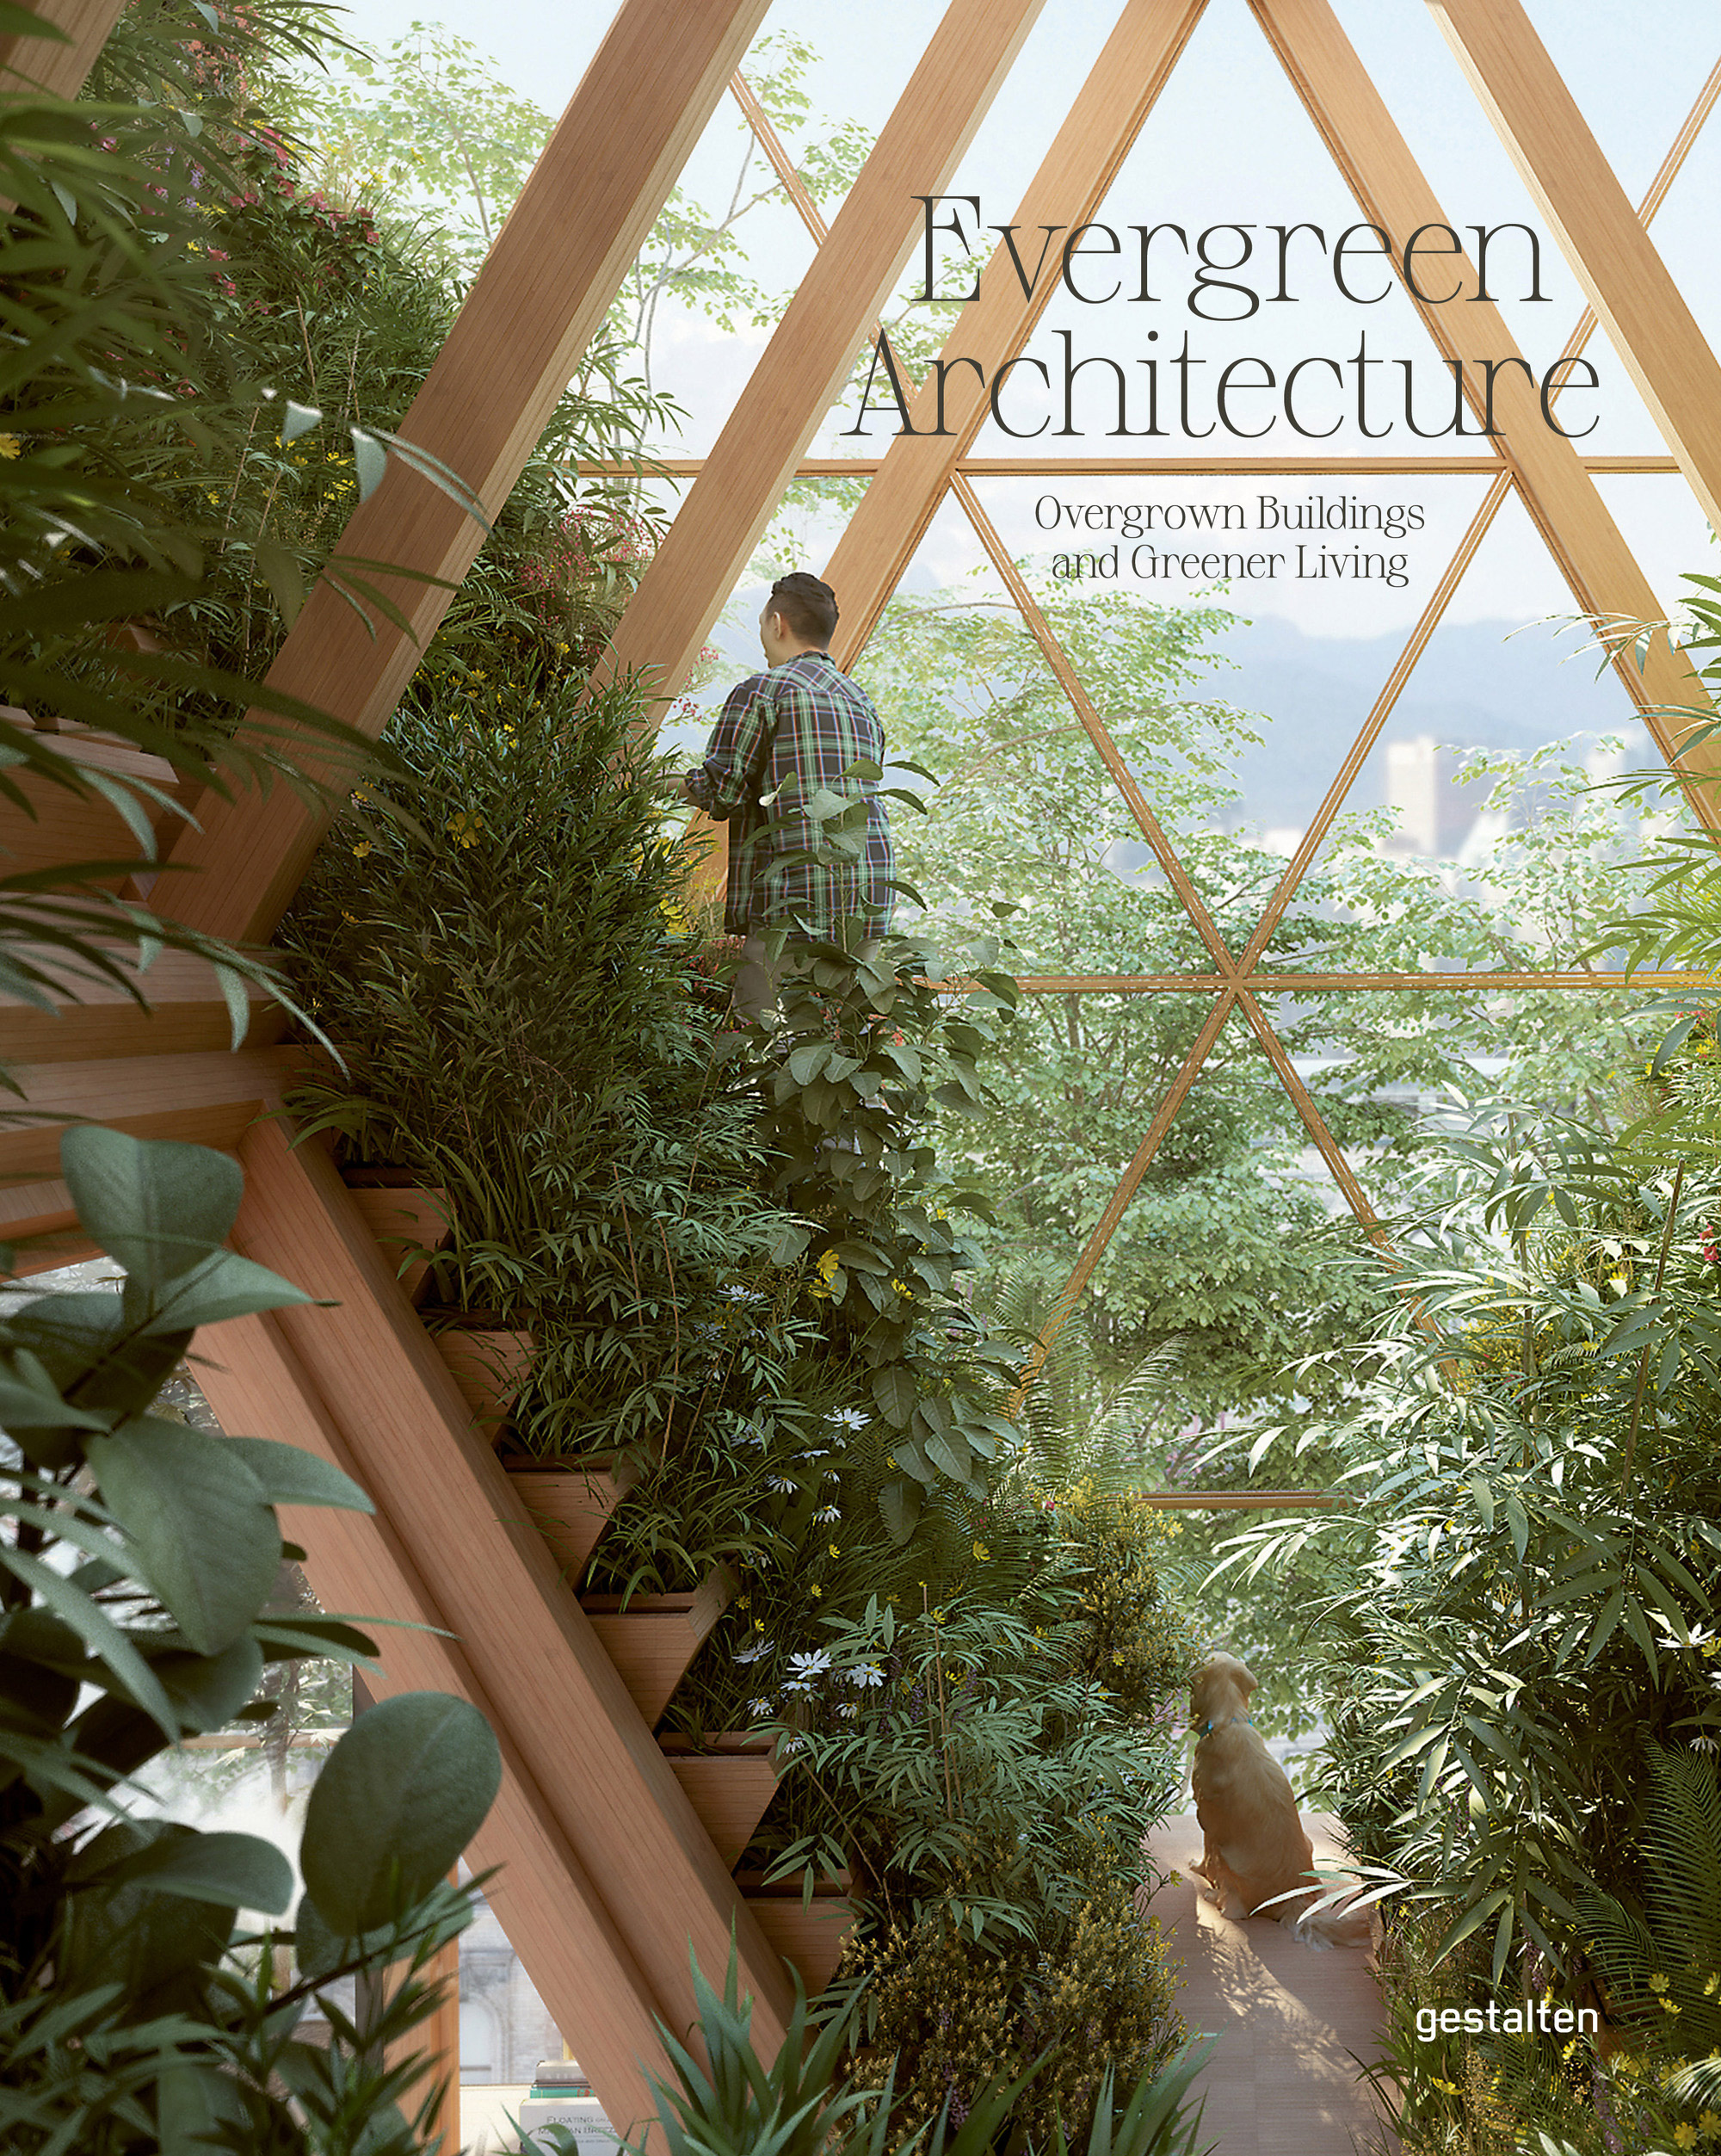 Evergreen Architecture: A New Book Explores Buildings That Place Nature at Their Core